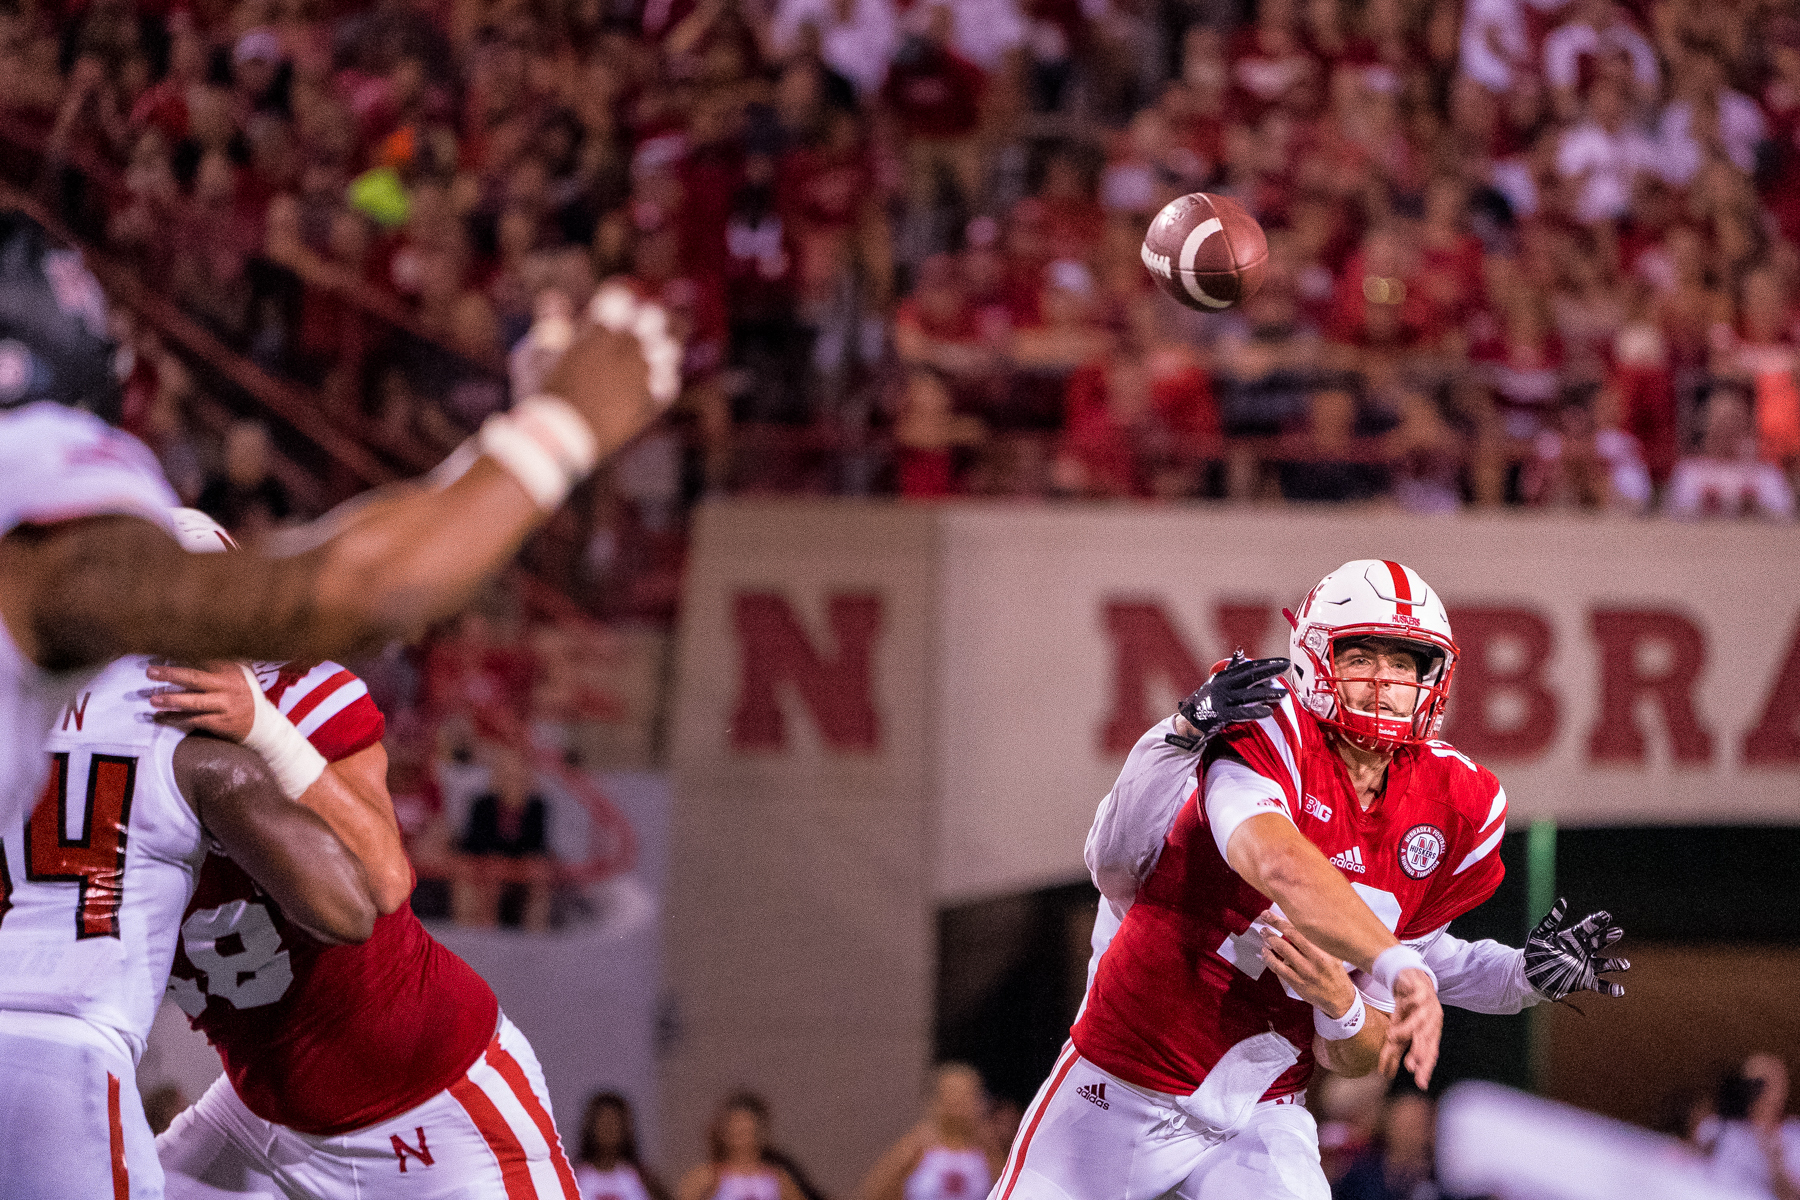 Tanner Lee during Nebraska's game against Arkansas State at Memorial Stadium on Sept. 2, 2017. Photo by Aaron Babcock, Hail Varsity